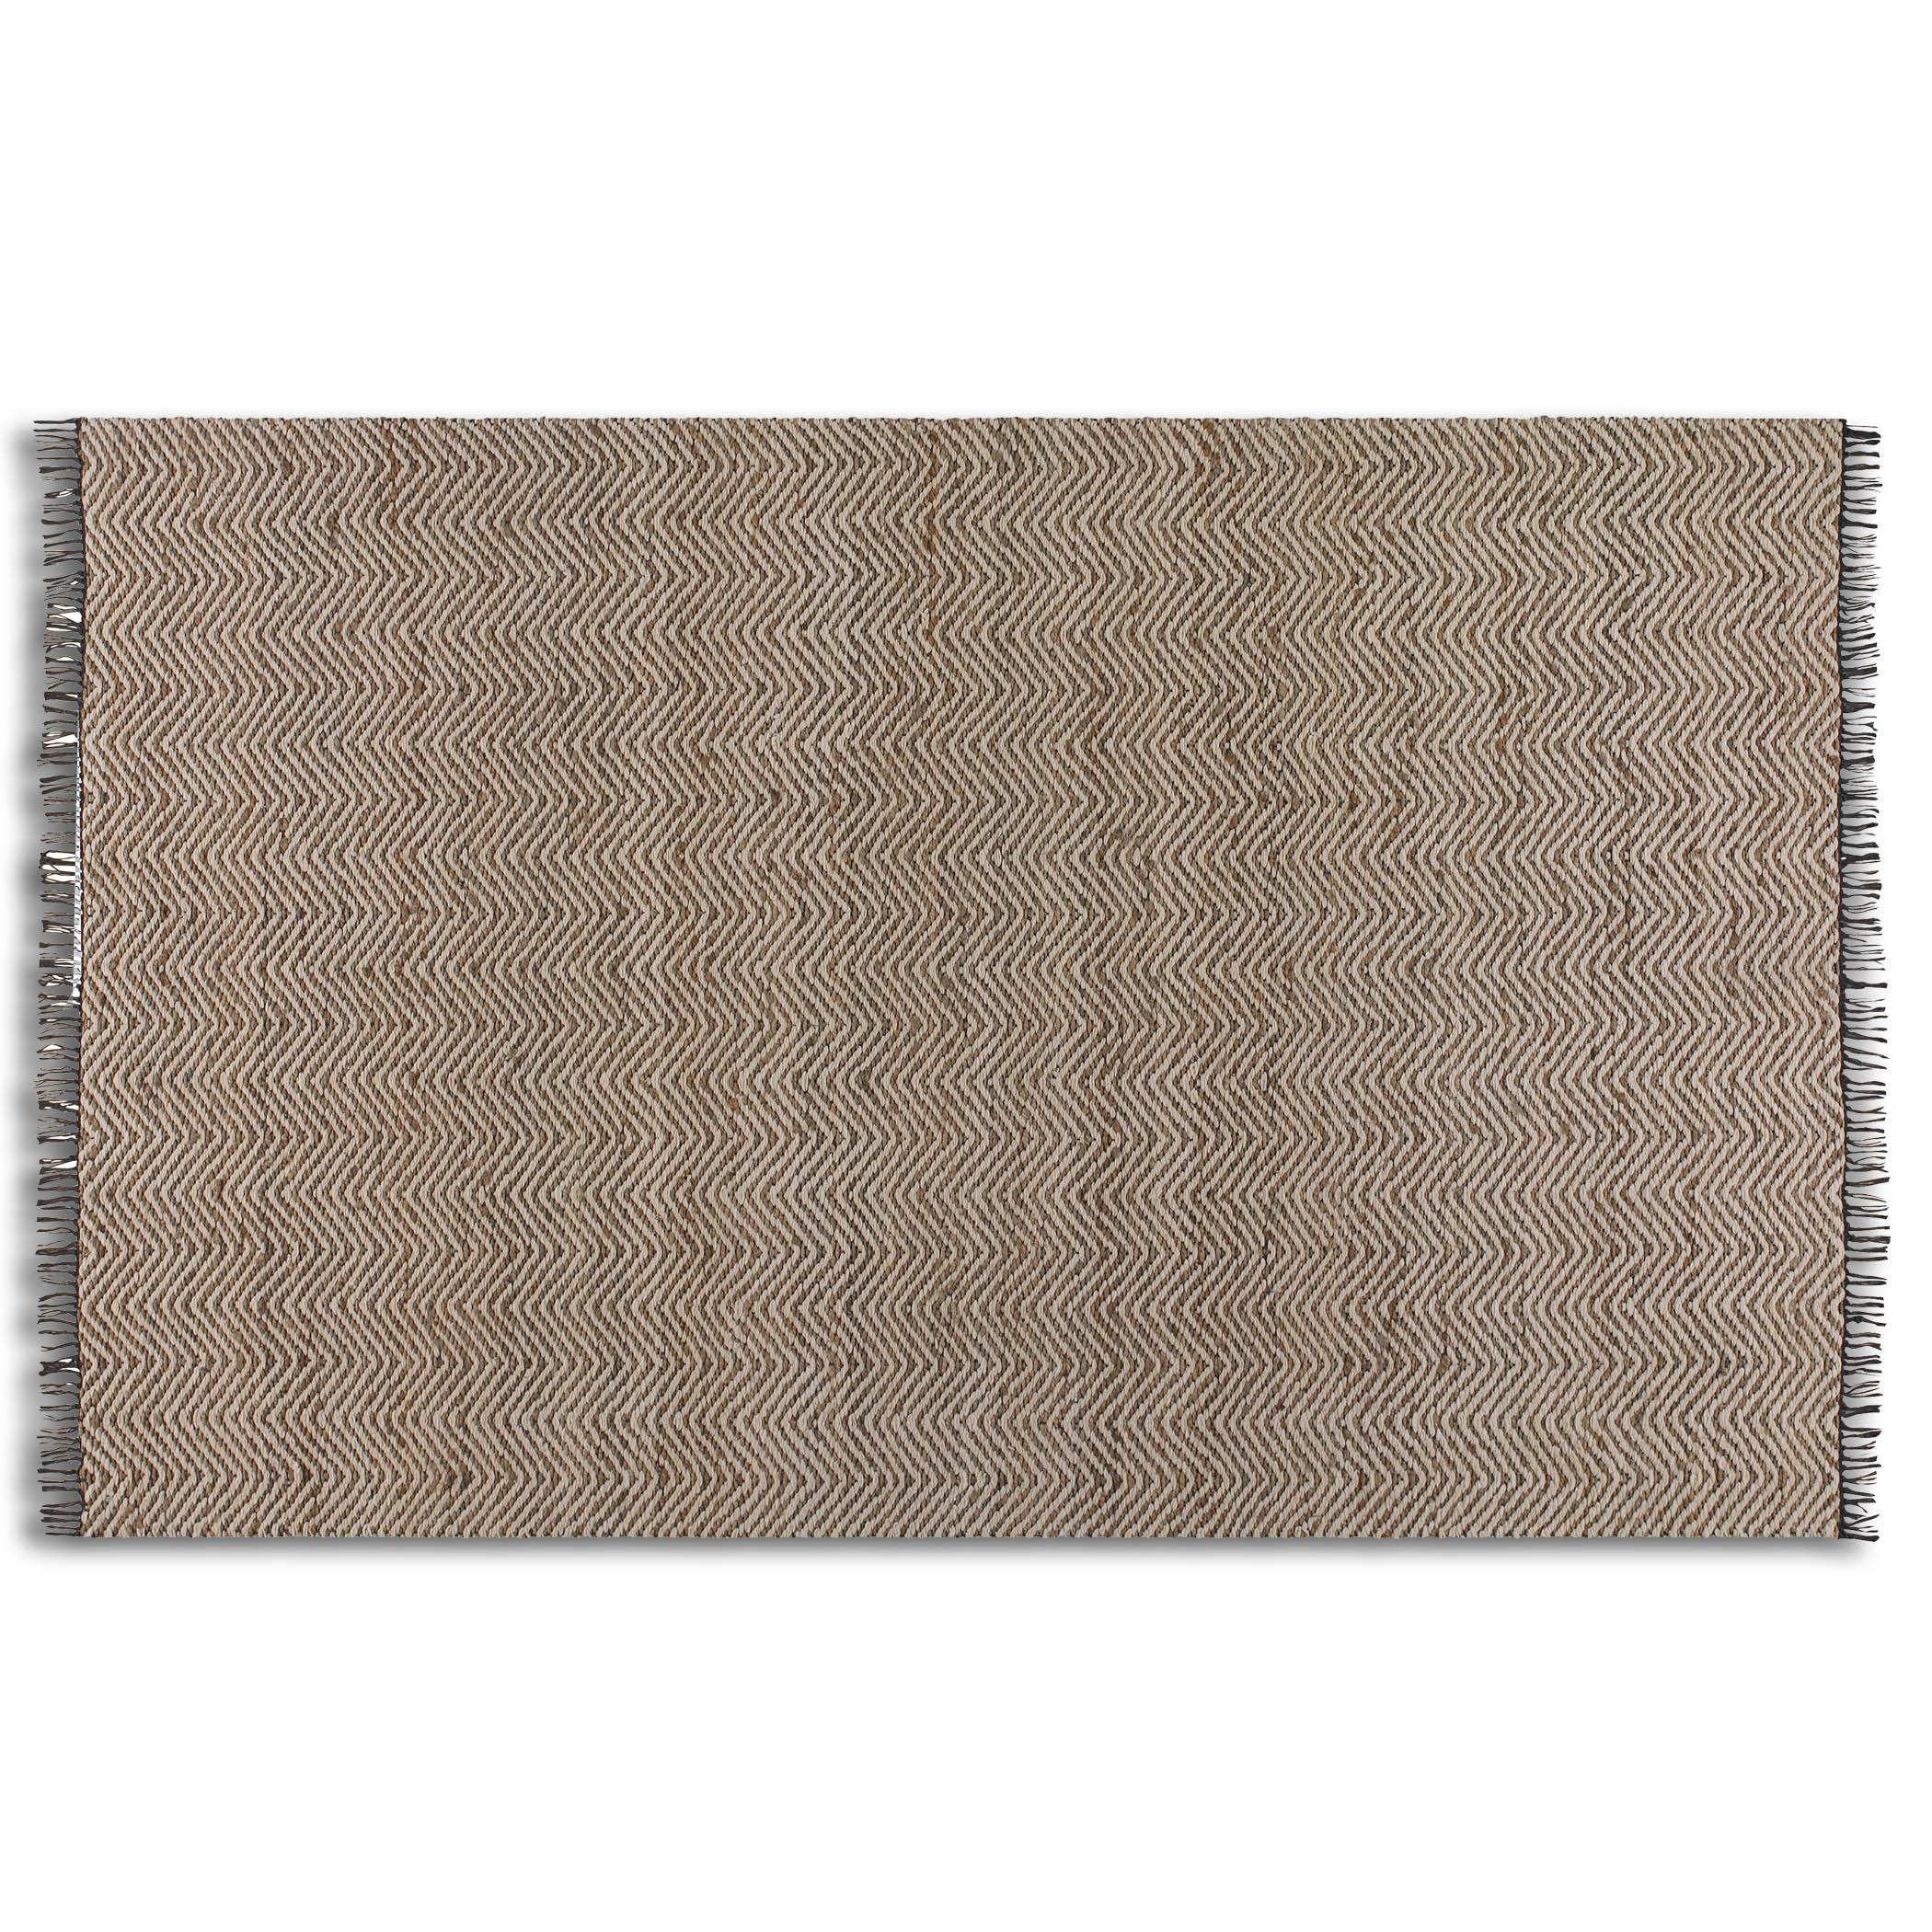 Uttermost Rugs Nalanda 5 X 8 Hand Woven Rug - Item Number: 71047-5